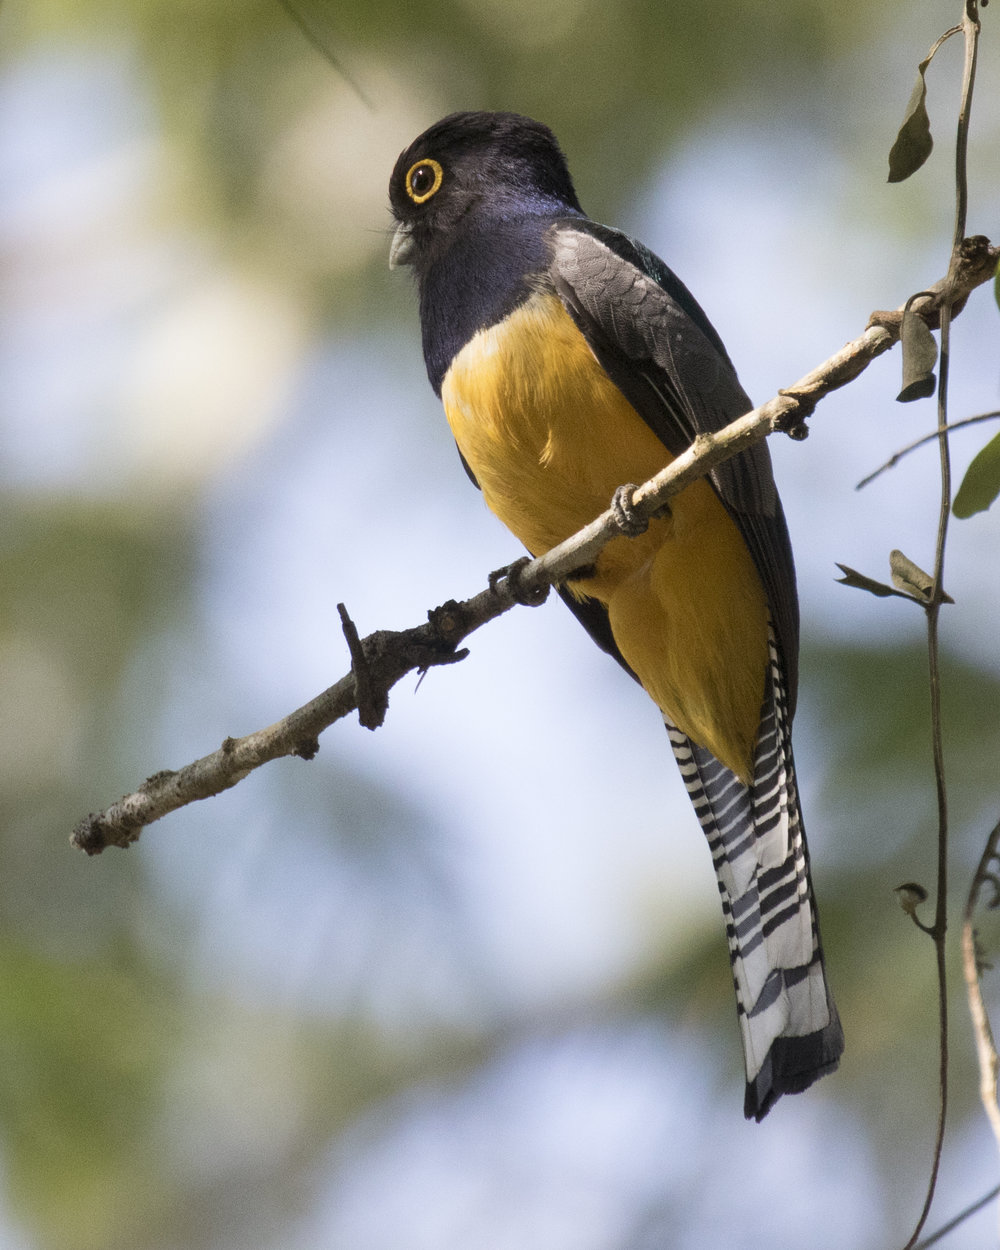 Gartered Trogon at Cahal Pech, Belize